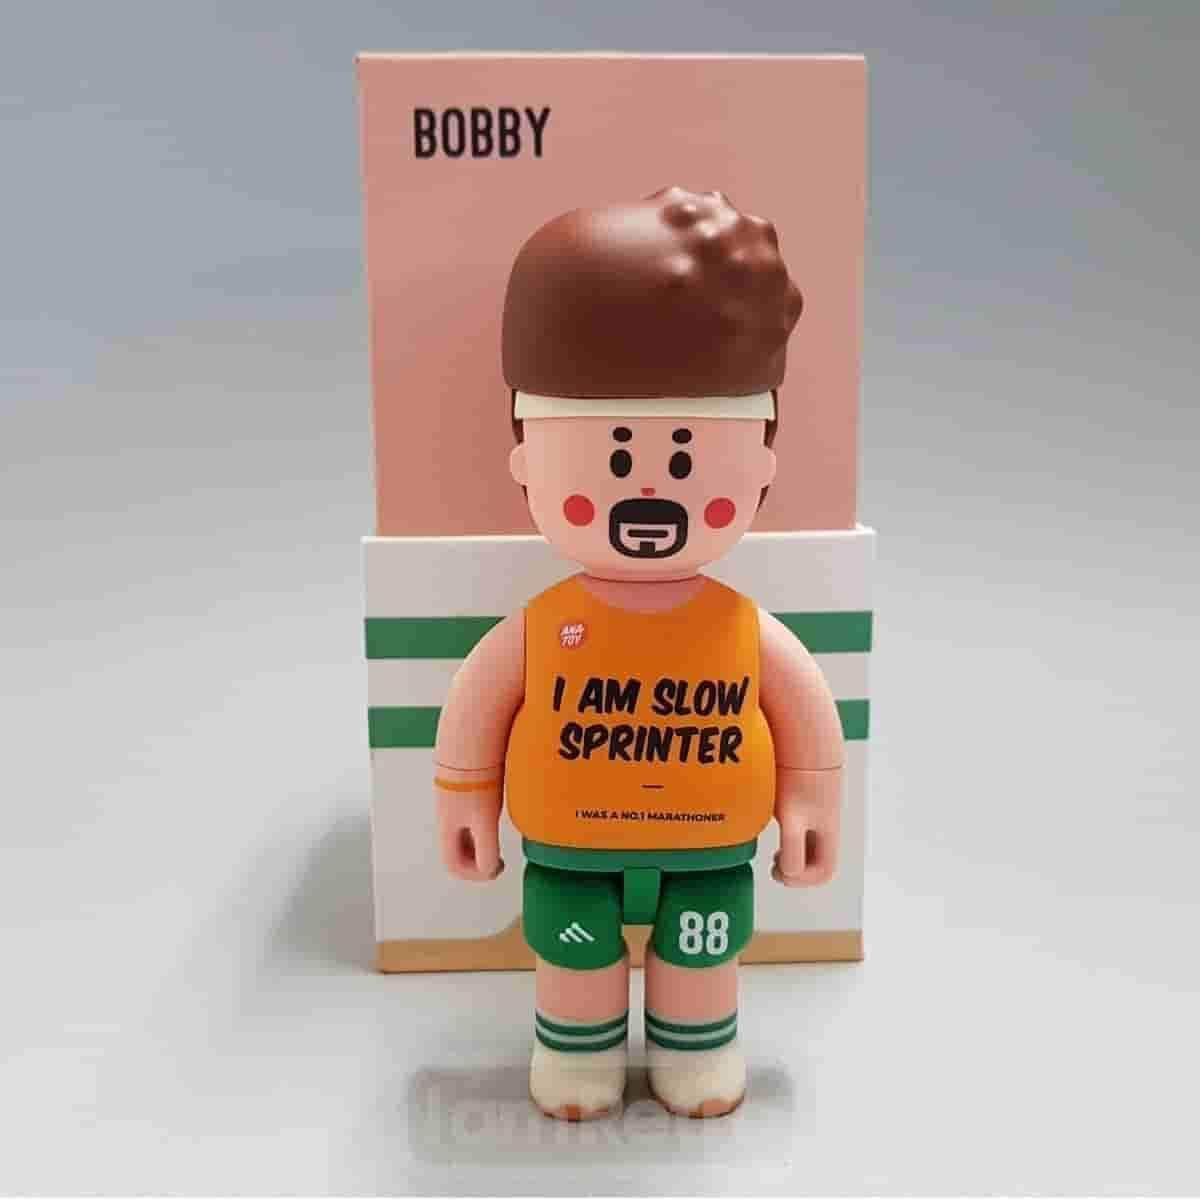 Bobby the Slow Sprinter Figure by Anatoy - IamRetro.com